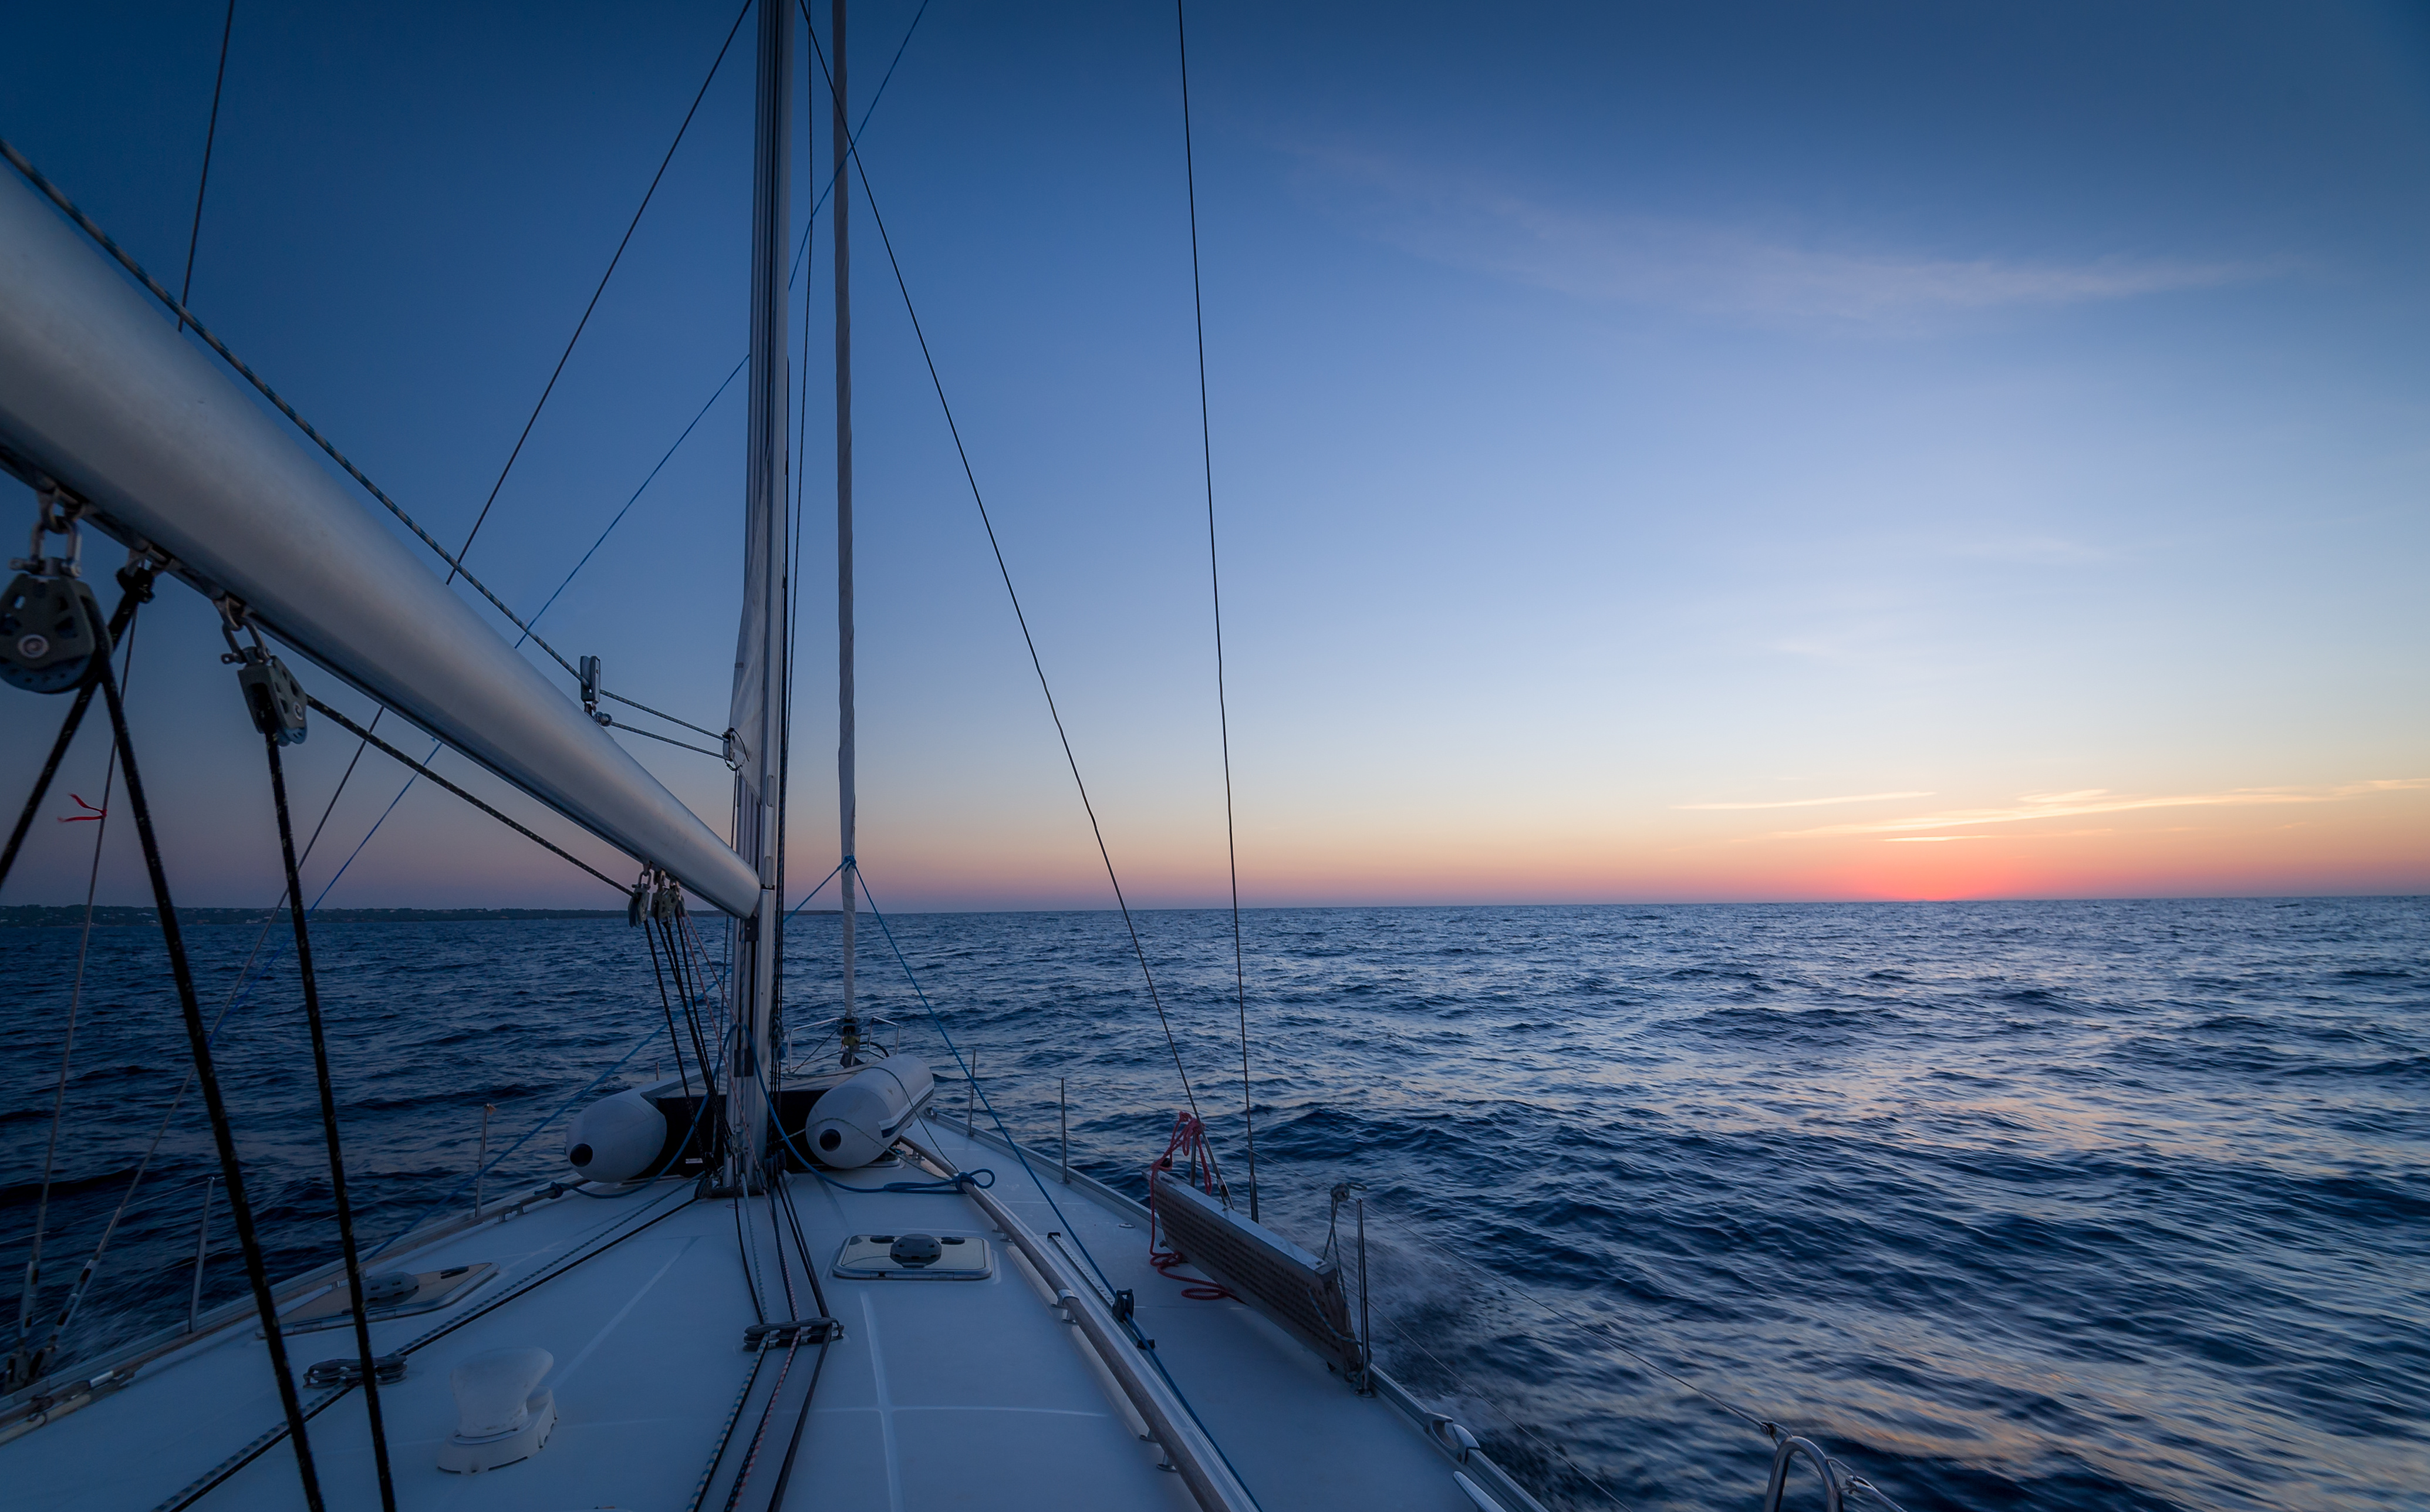 Sailing at sunset in Greece